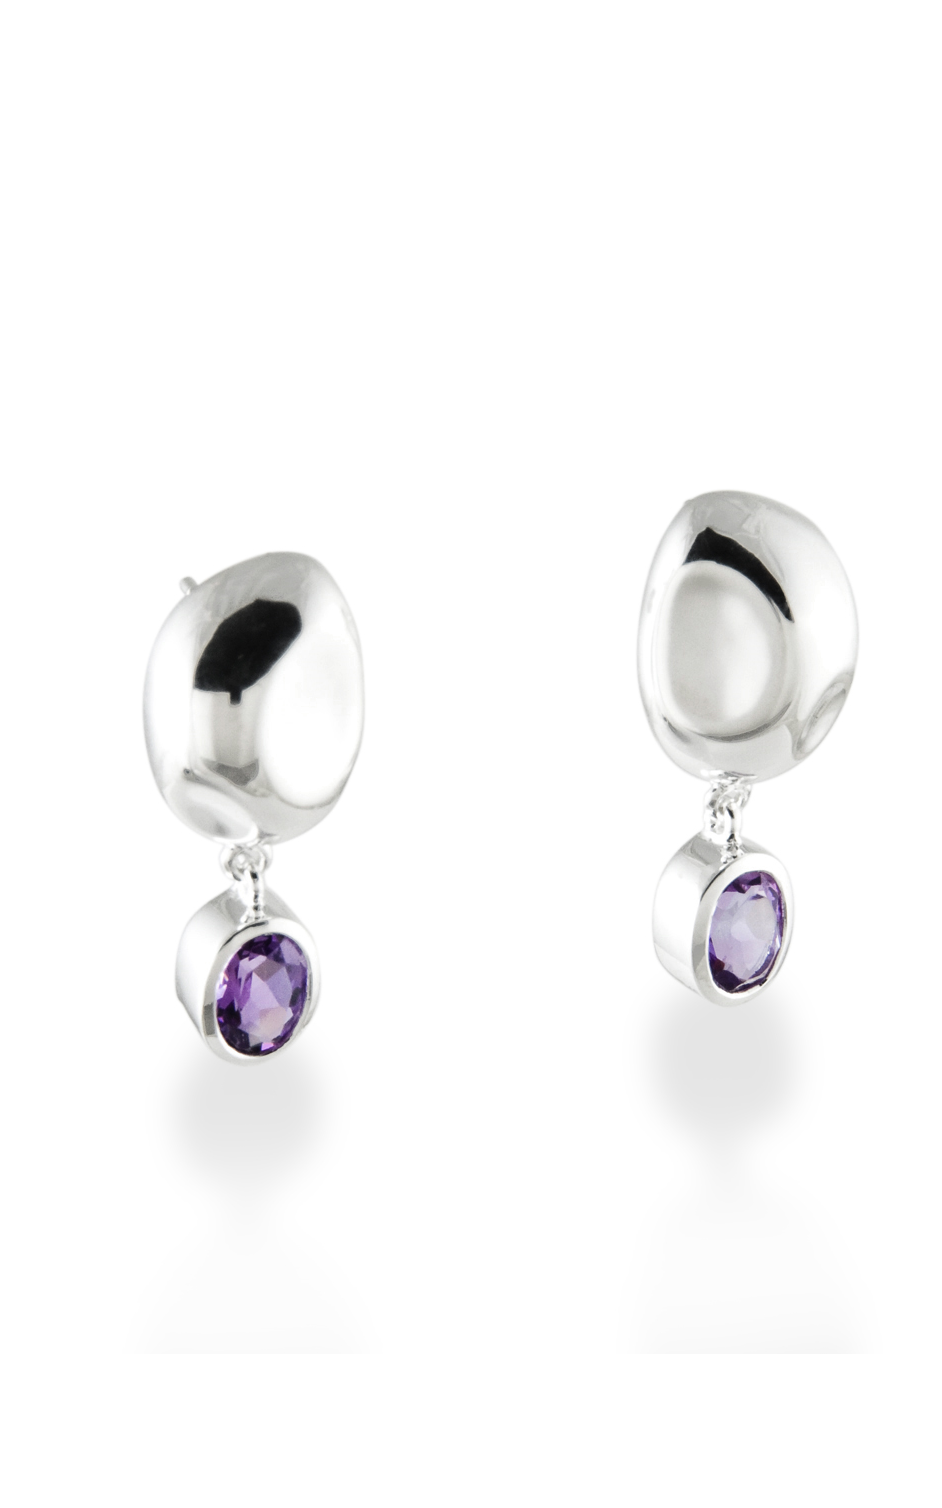 Zina Touchstone Earrings B371-A product image